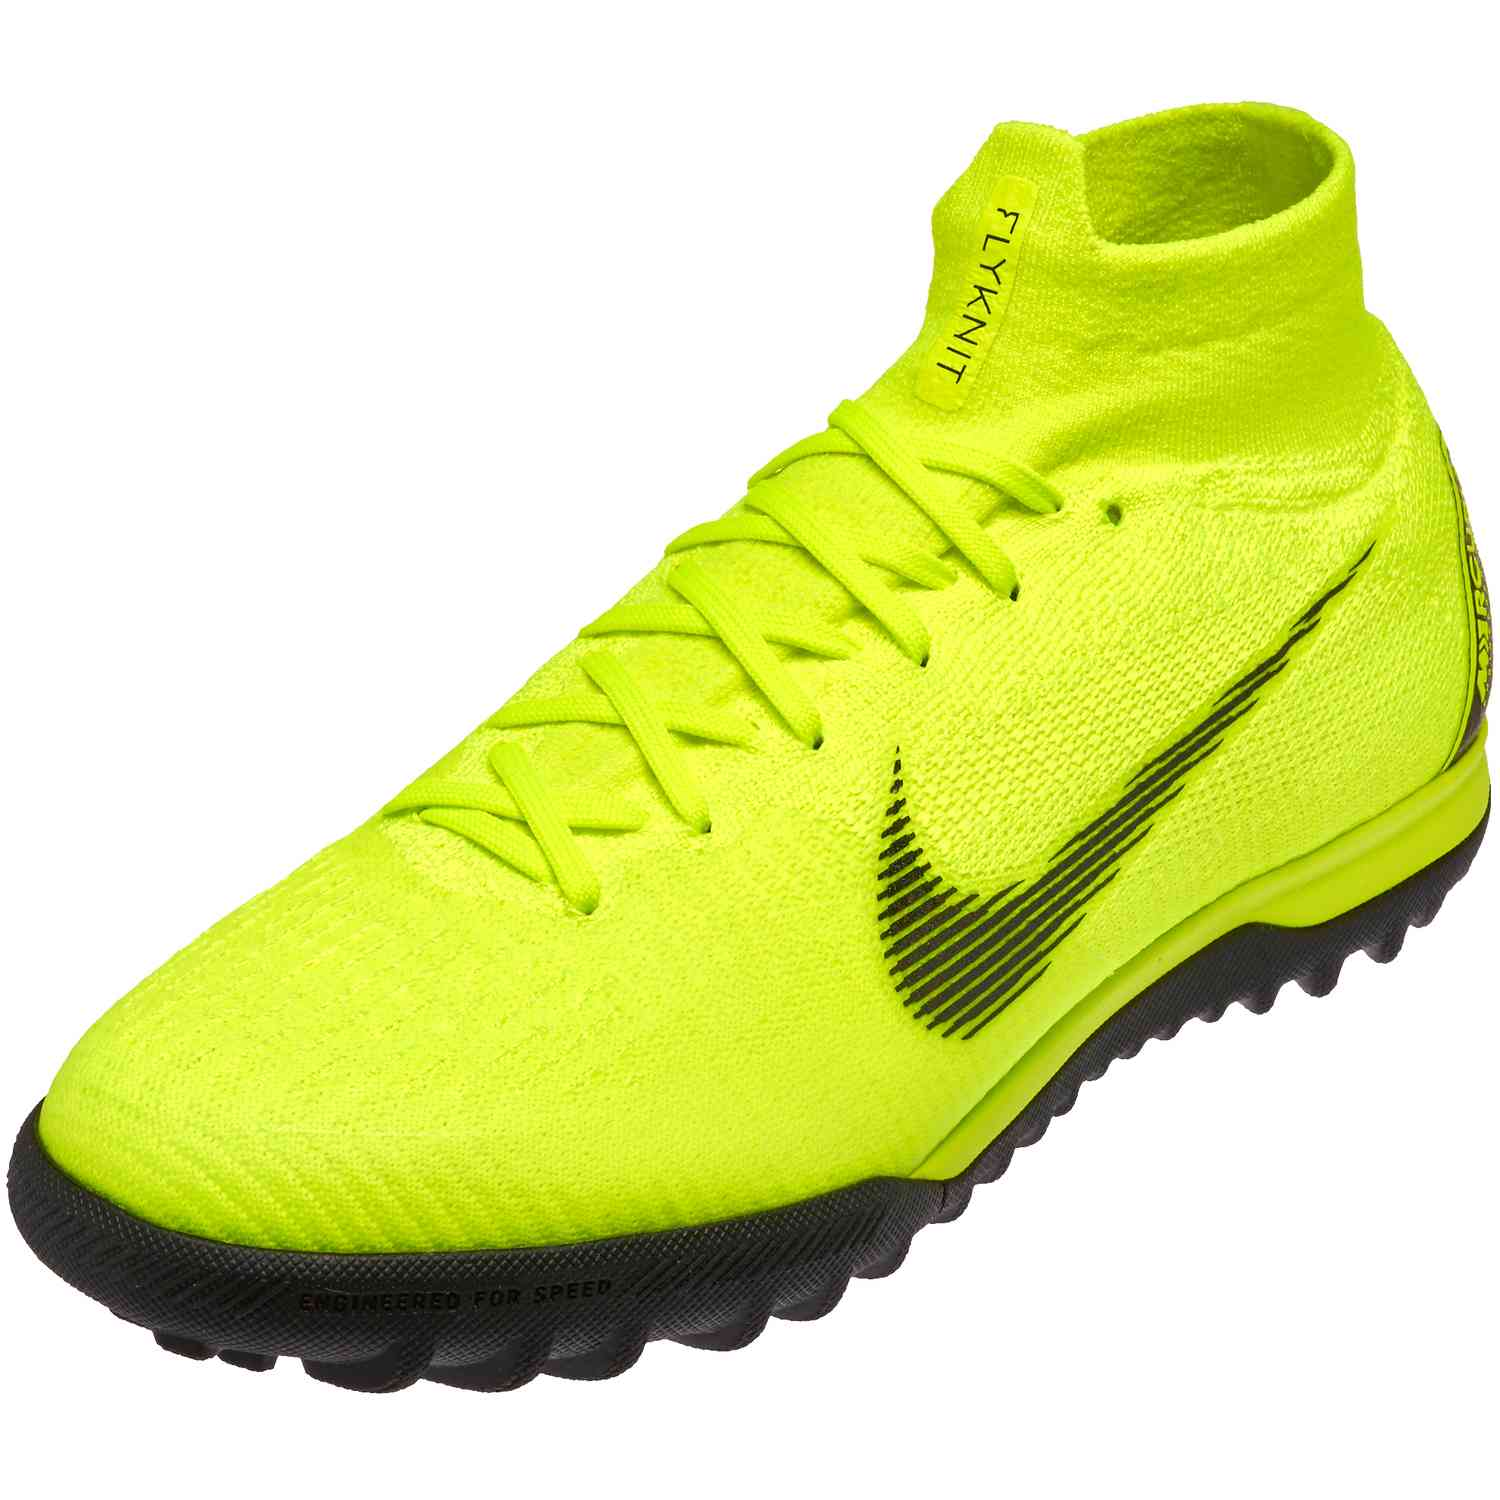 4509c089a Nike Mercurial SuperflyX 6 Elite TF - Volt Black - SoccerPro